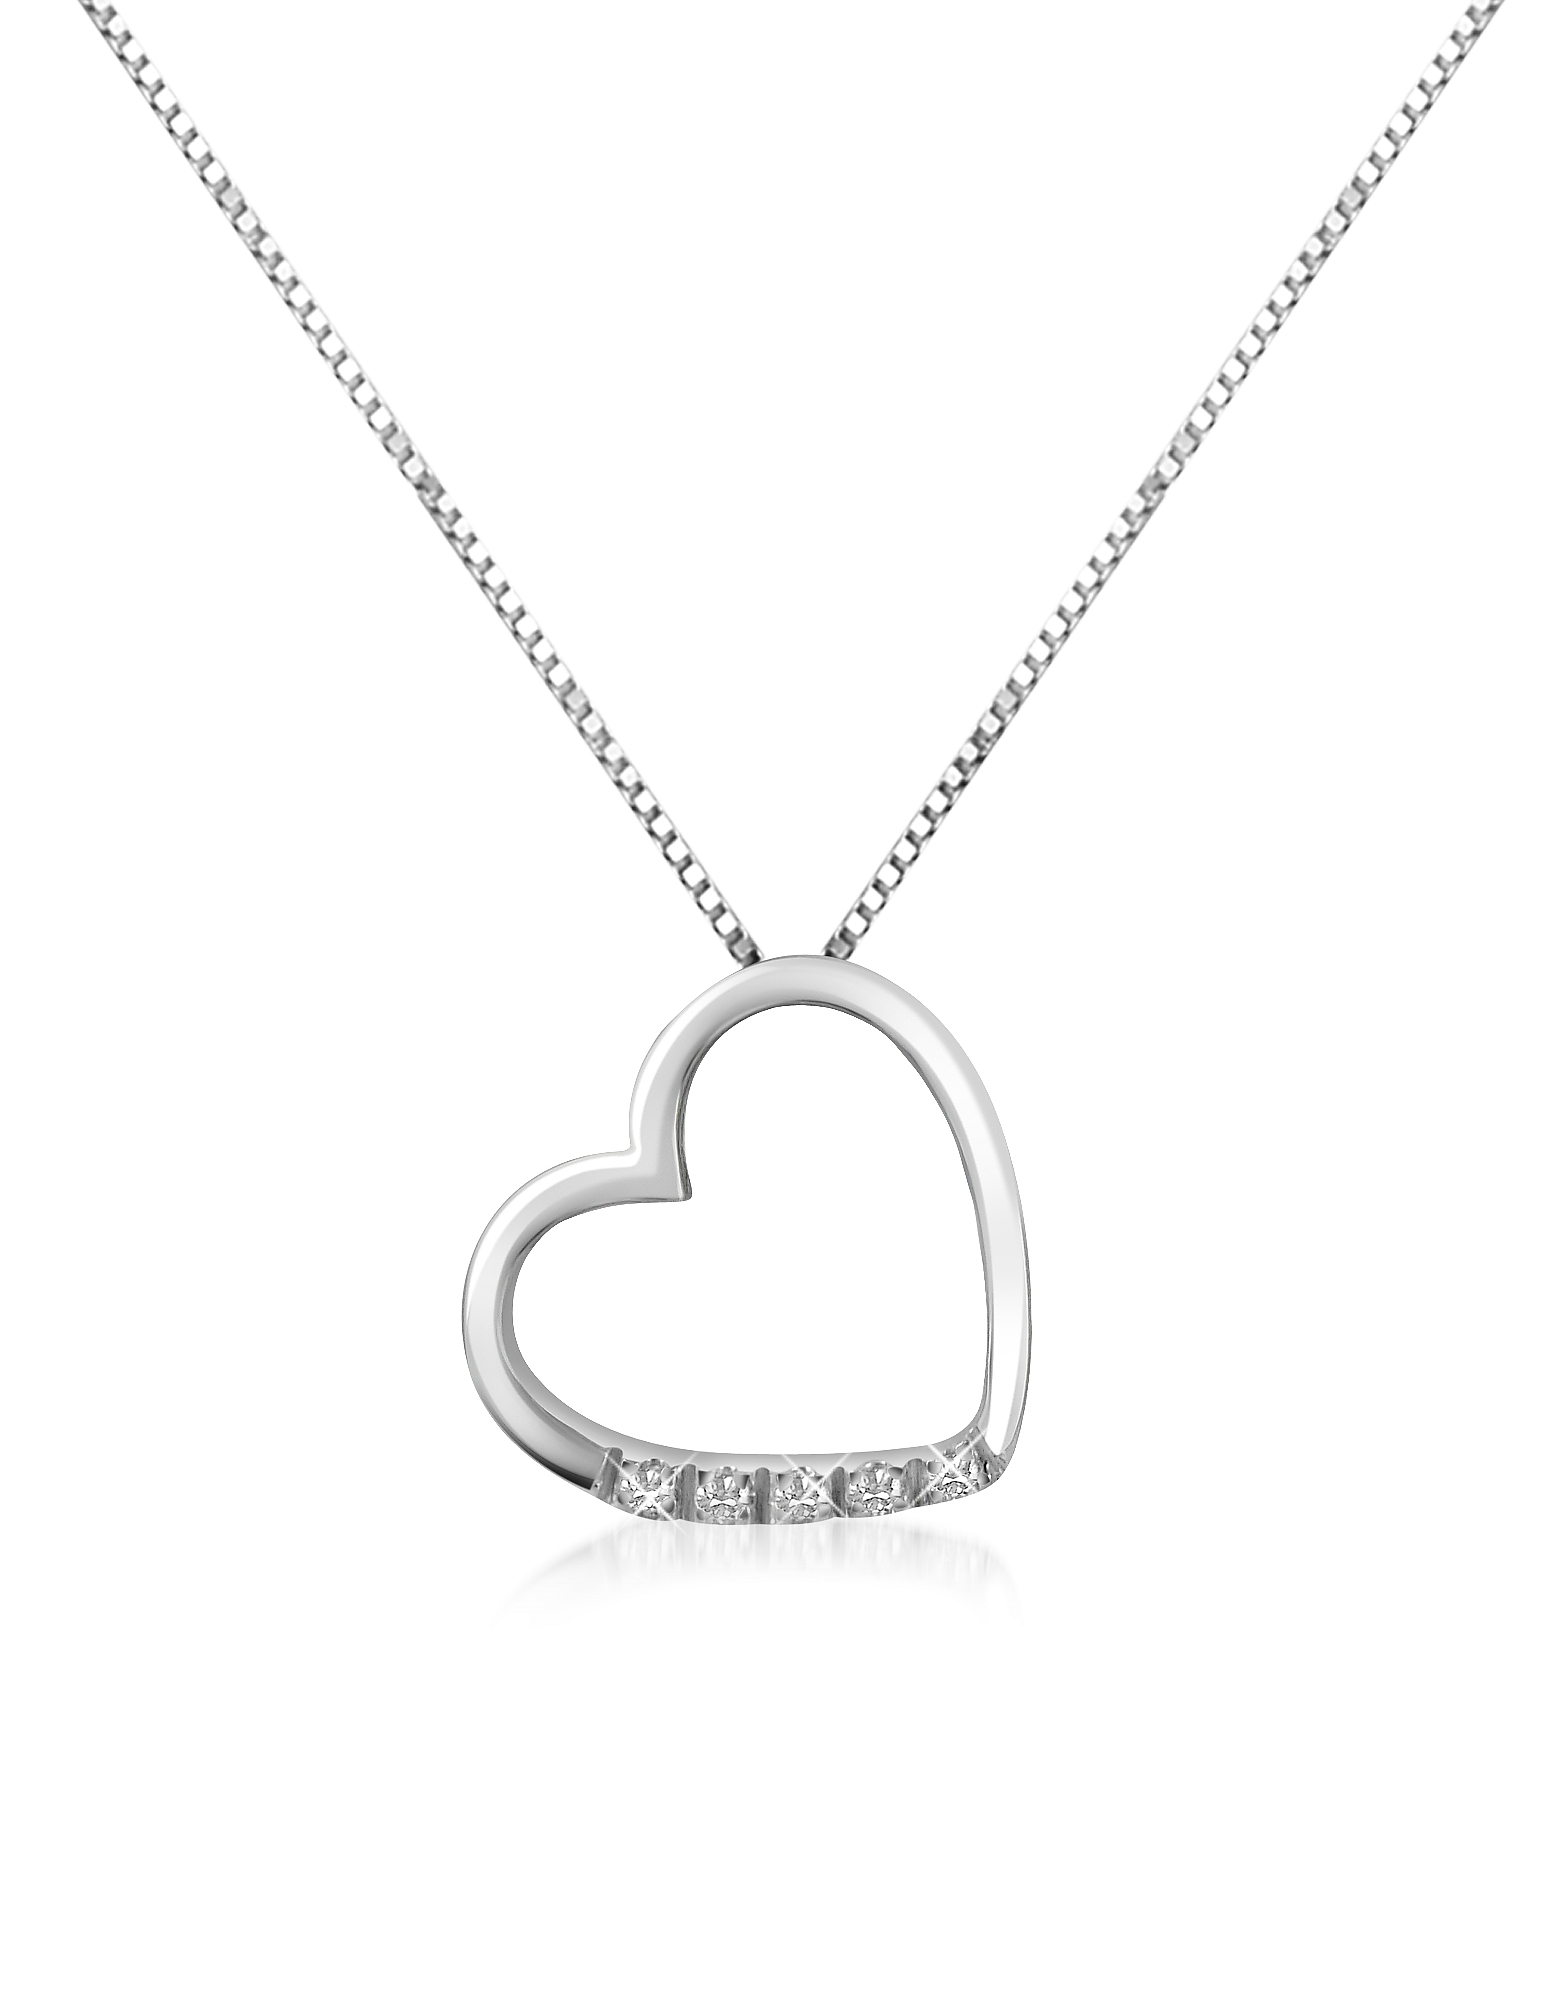 Forzieri Necklaces, 0.03 ct Diamond Floating Heart 18K Gold Necklace